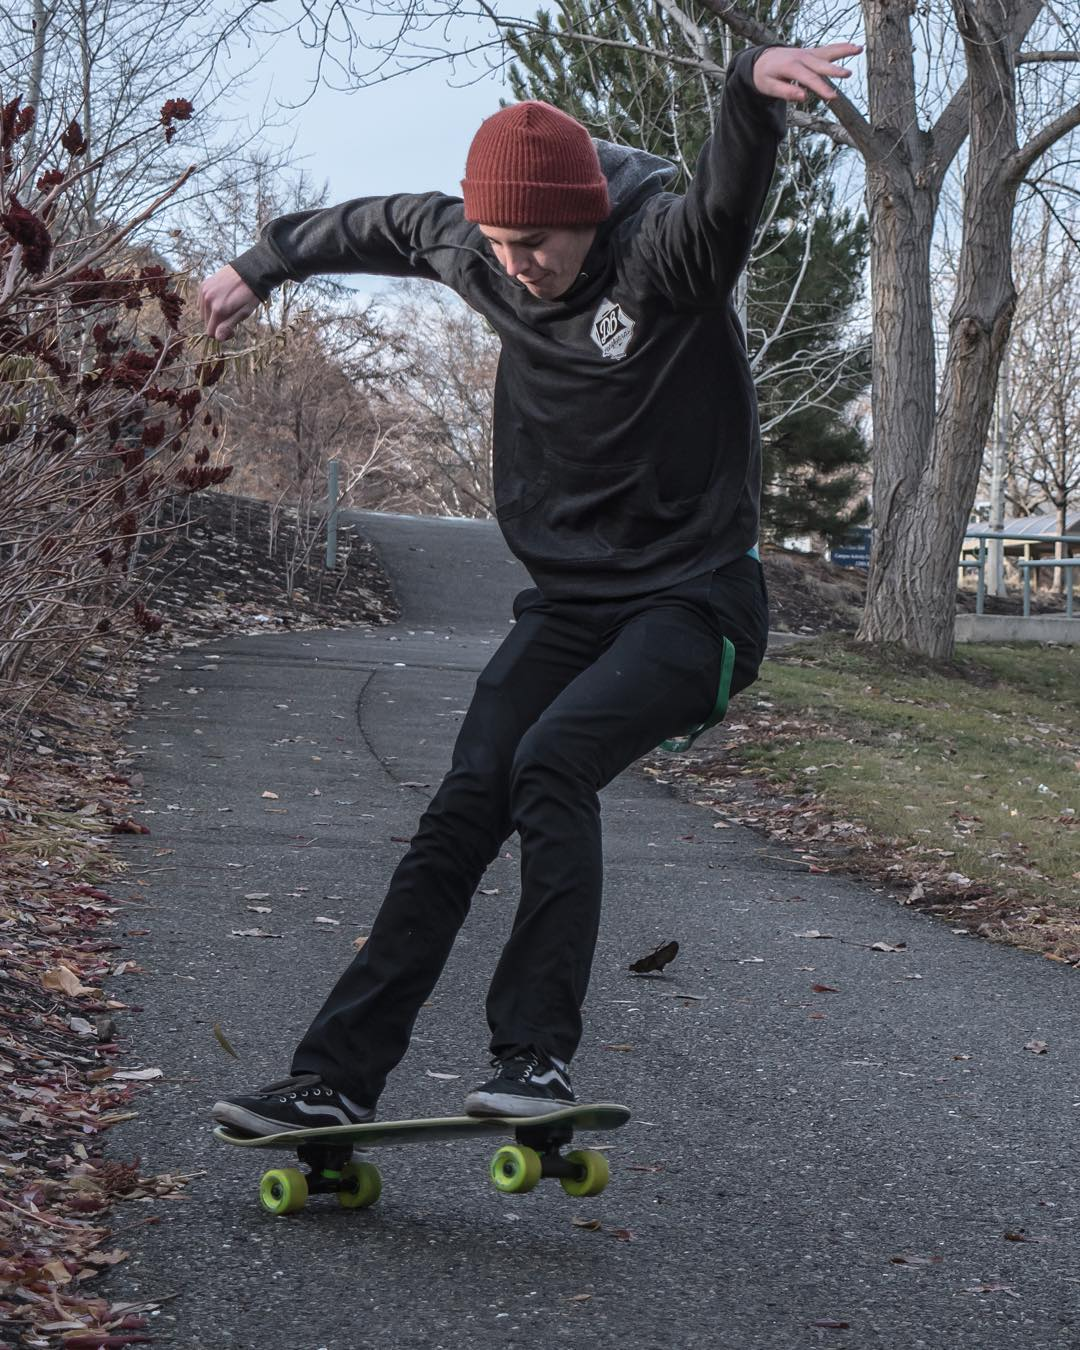 Aiden Gilbert (@aidan_gilbert) with the blunt slide on the Mini Cruiser. Photo by @taylor_brown13  #dblongboards #dbmini #longboard #longboarding #jazzhands